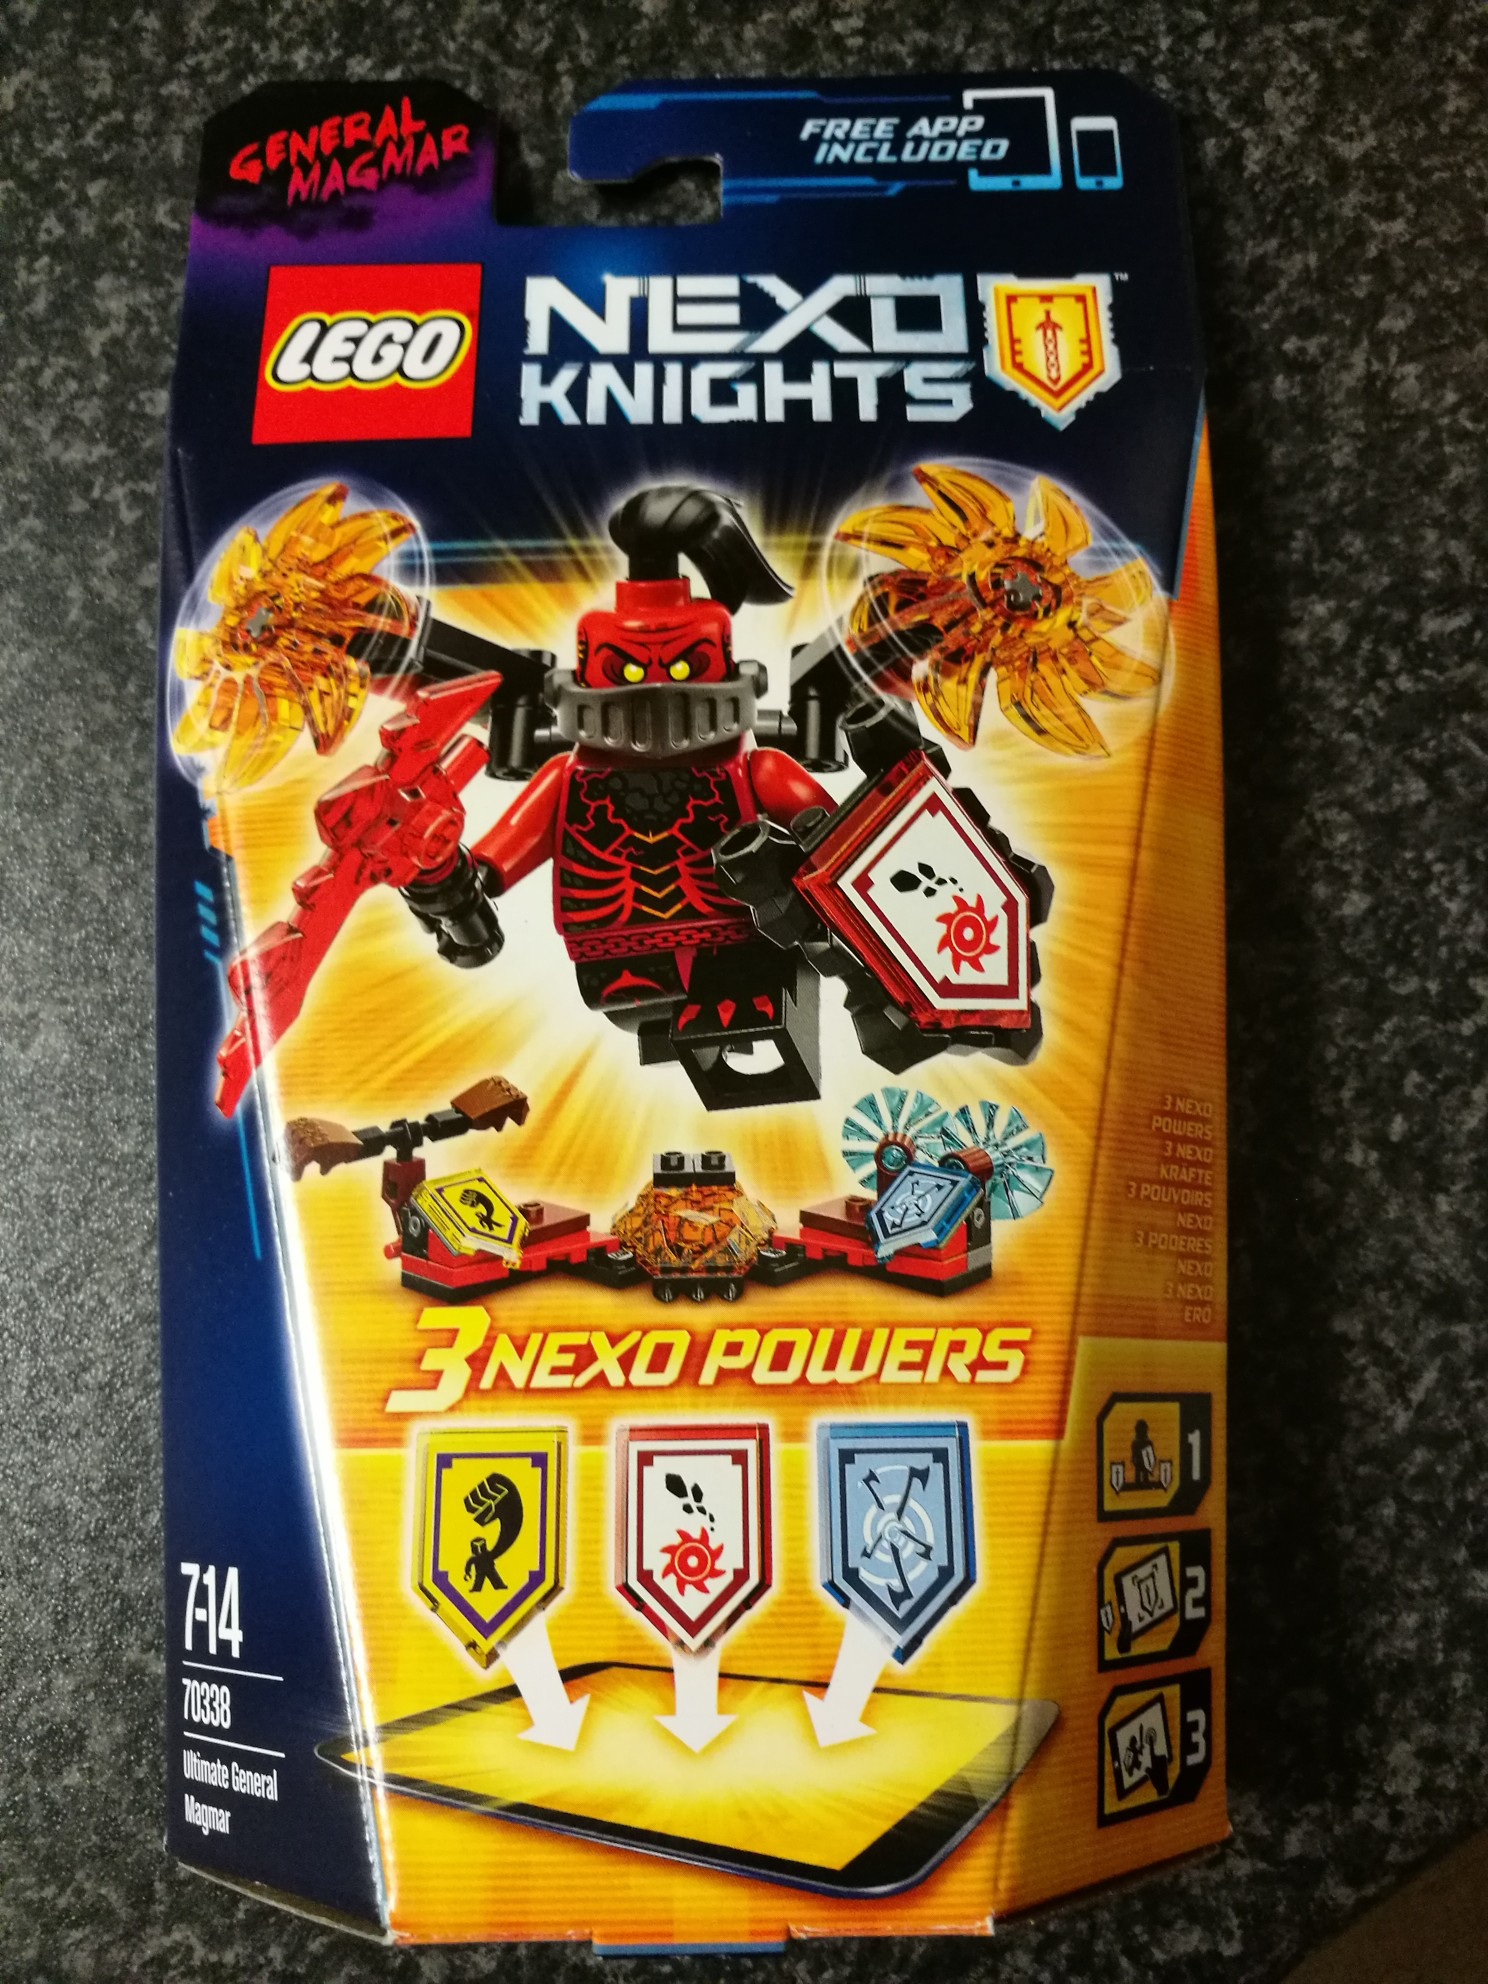 lego nexo knights - Local Classifieds, Buy and Sell in Manchester ...